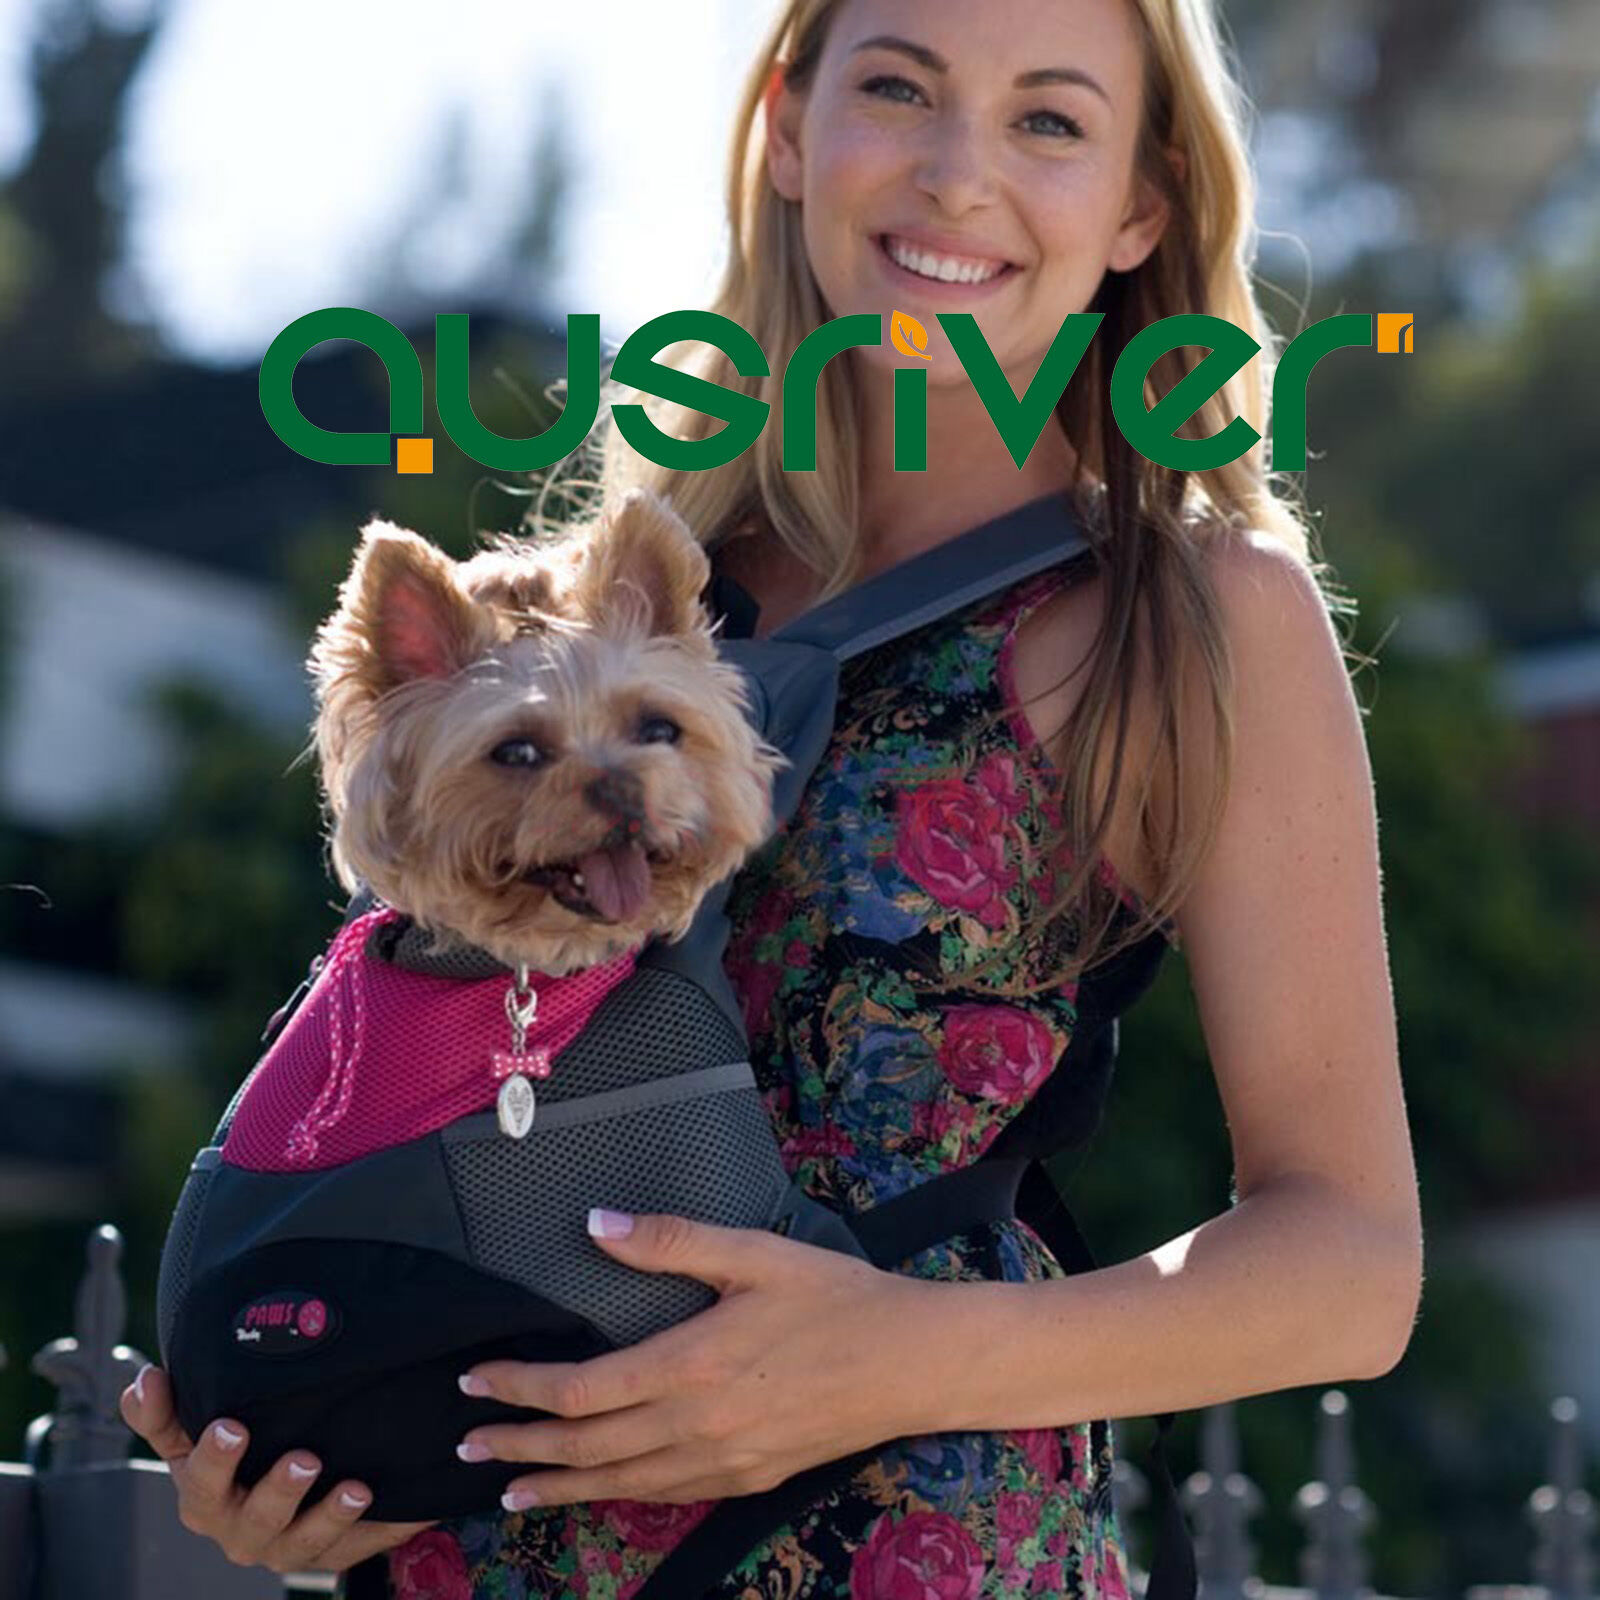 Rosa Blau Oxford Backpack Puppy Dog Cat Comfort Front Tote Carrier Travel Bag